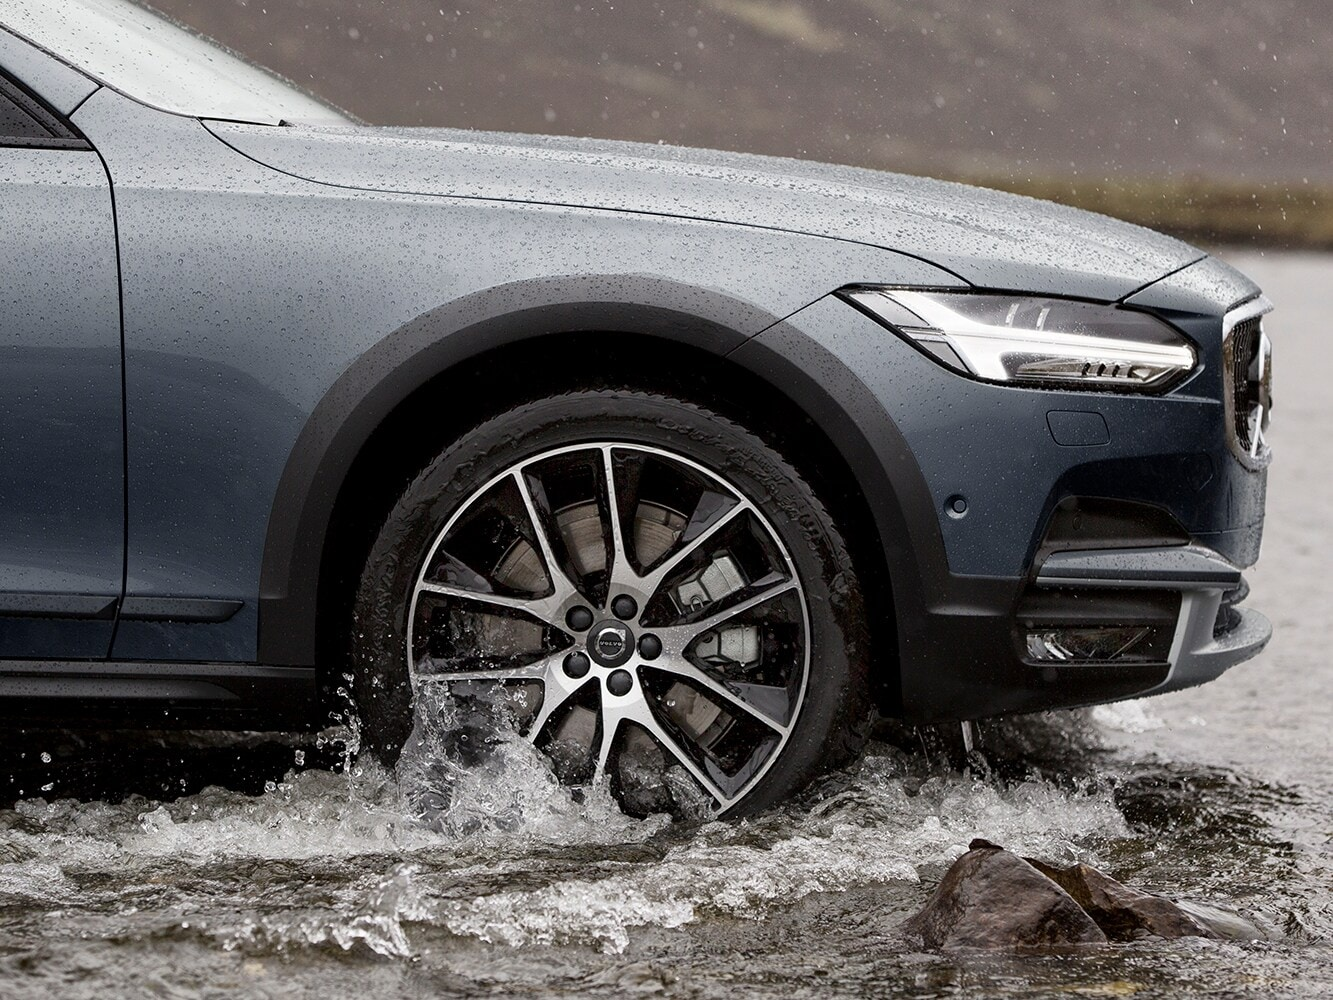 Close-up of front wheel of a Volvo V90 Cross Country fording a river showing the beautiful alloy wheels